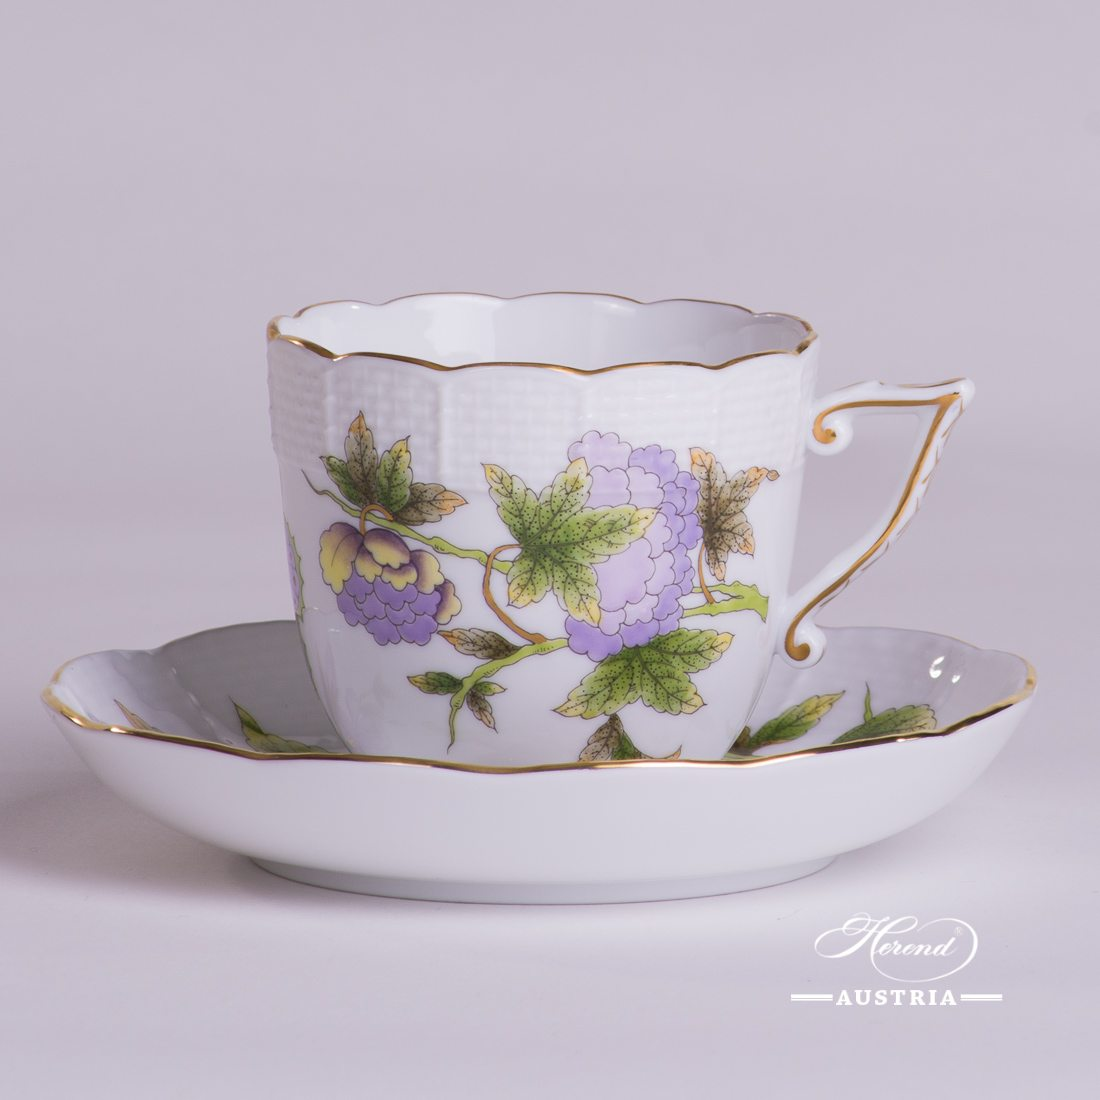 Royal Garden Coffee Cup and Saucer - 706-0-00 EVICTF1 - Herend Porcelain